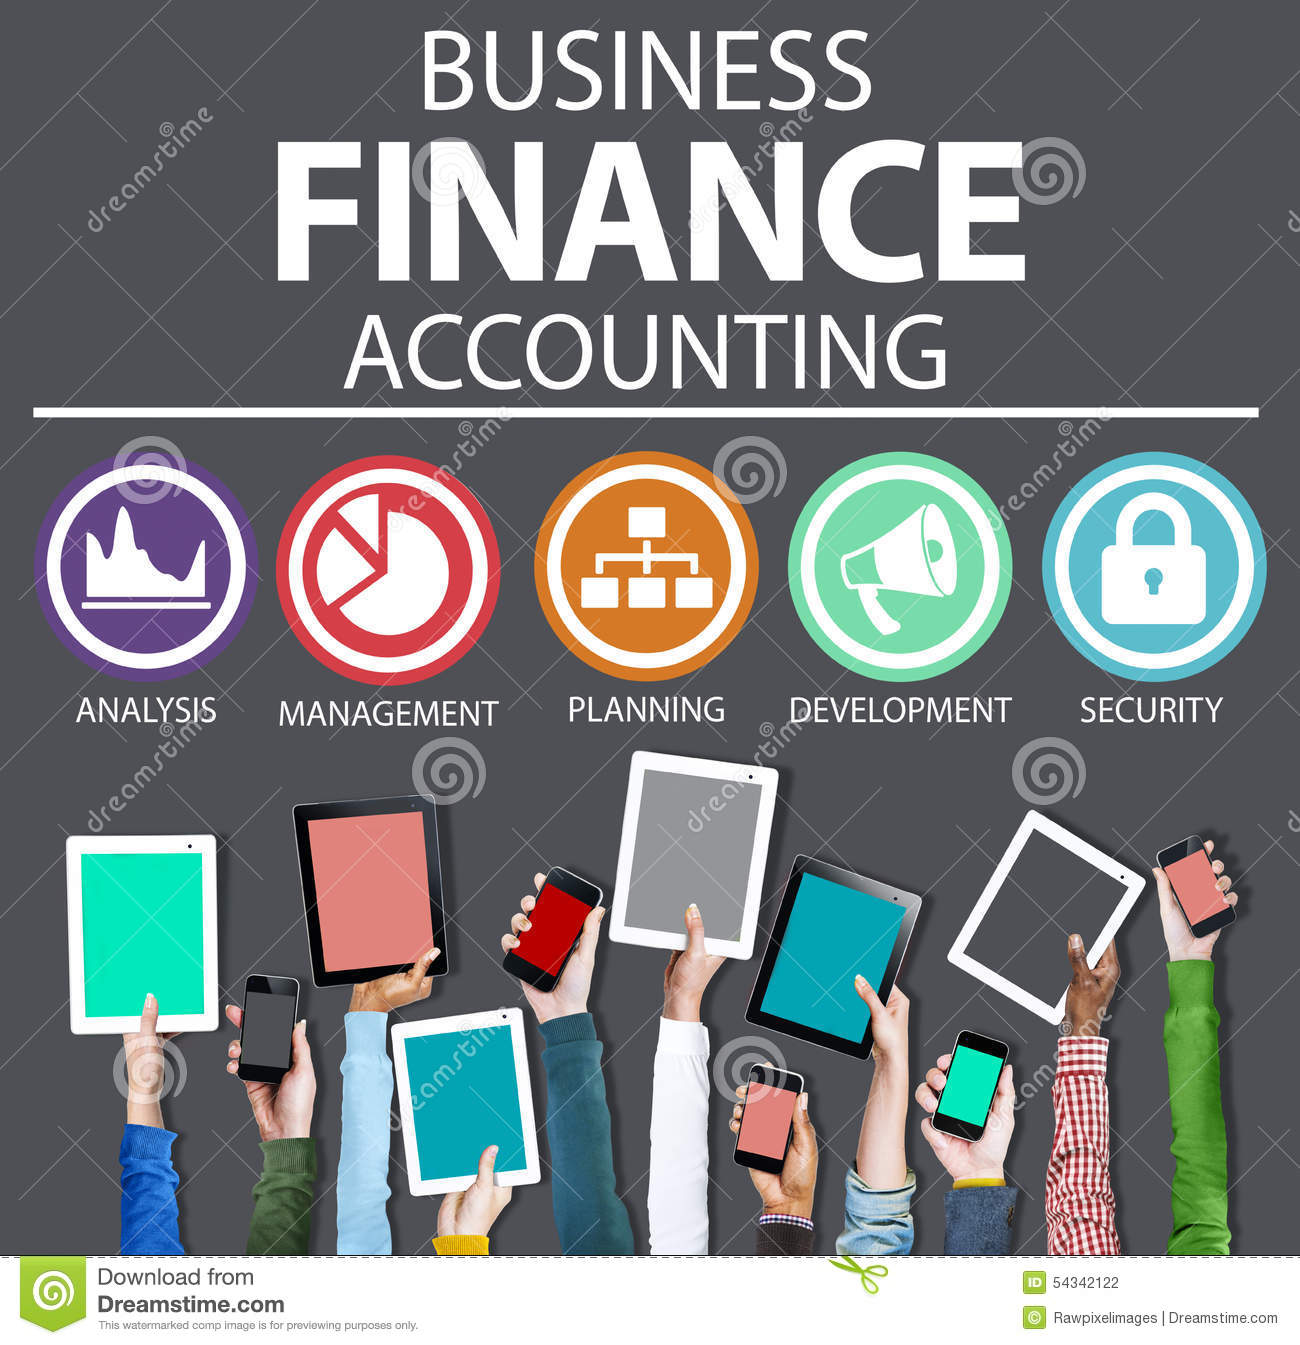 financial accounting for company Businesses often assume that the readers of the financial statements and other information in their financial reports are fairly knowledgeable about business and finance, in general, and understand basic accounting terminology and measurement methods, in particular.